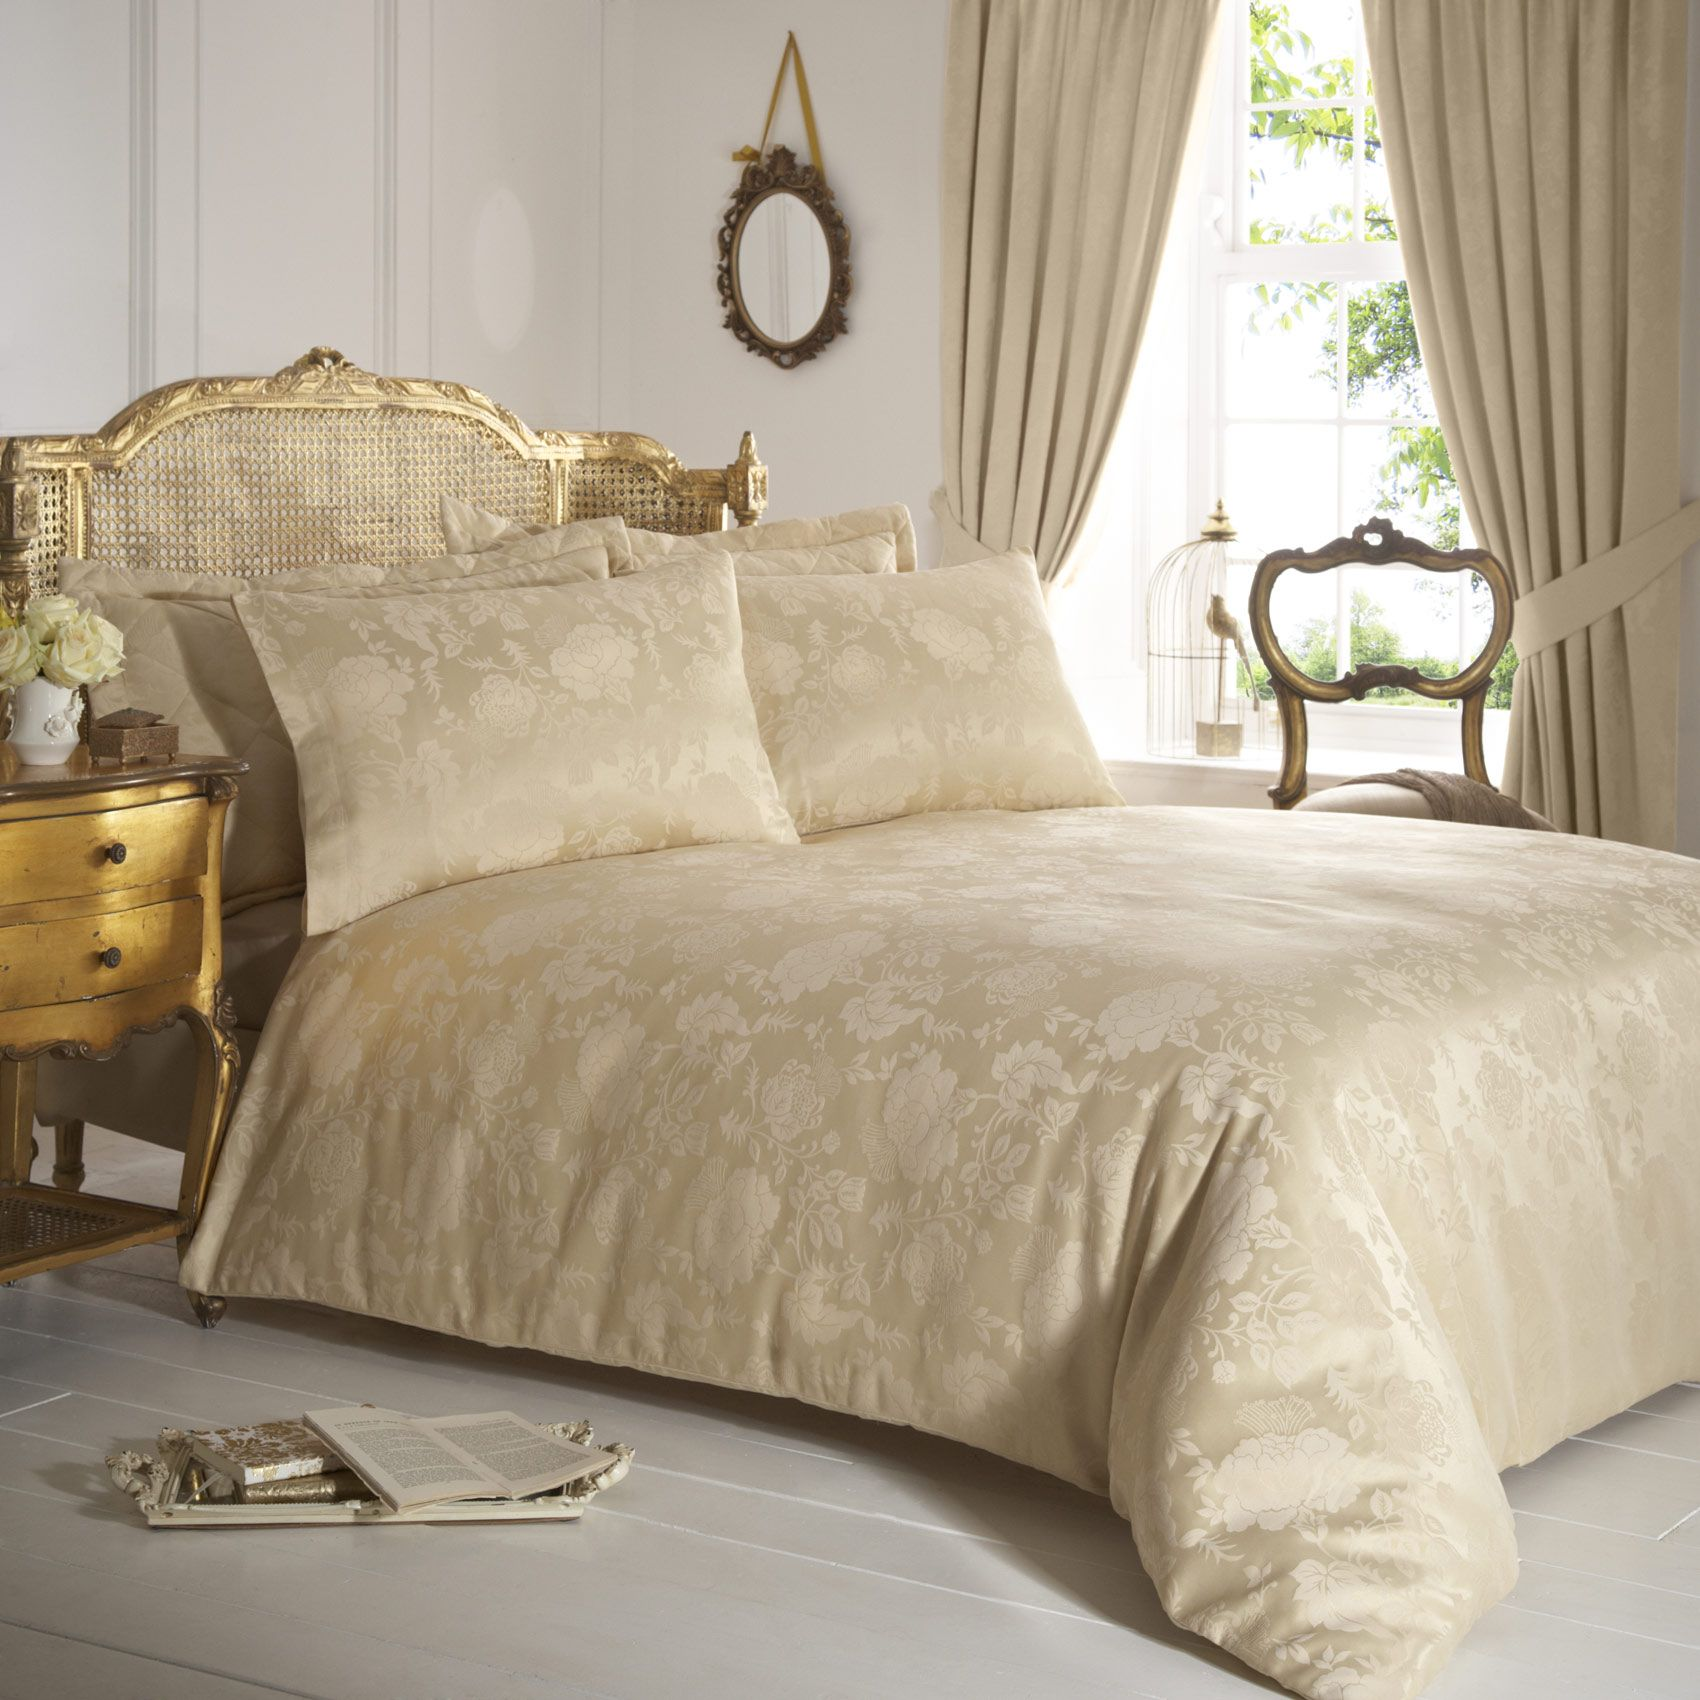 Vantona Rose Damask Duvet Cover Sets Gold